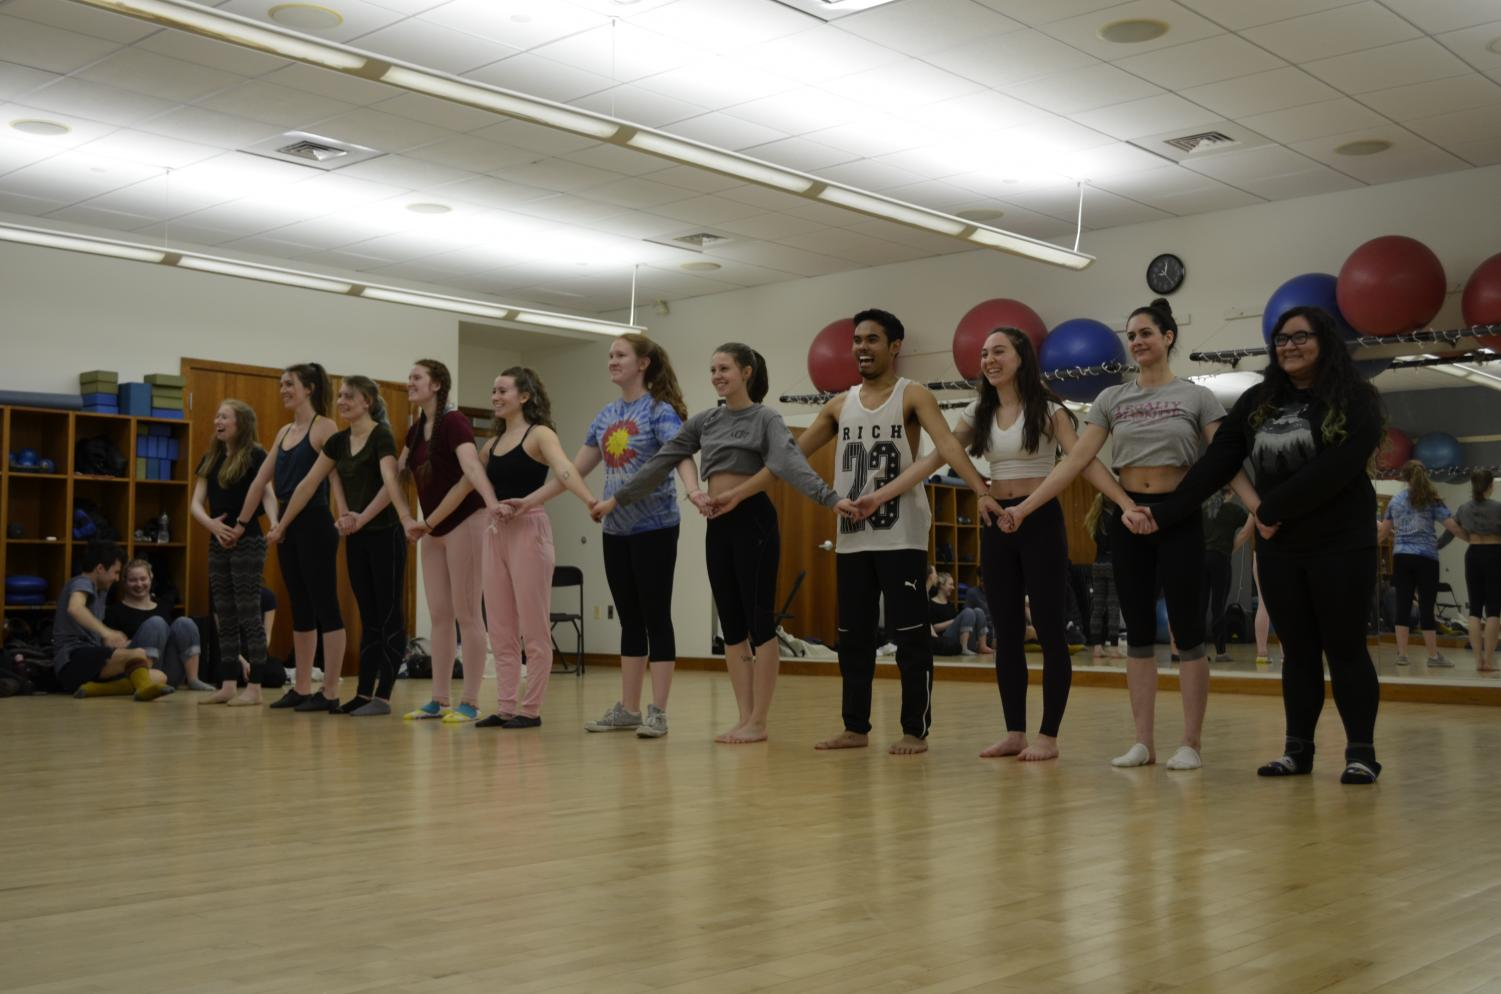 Members of the dance team practicing in preparation for the showcase.